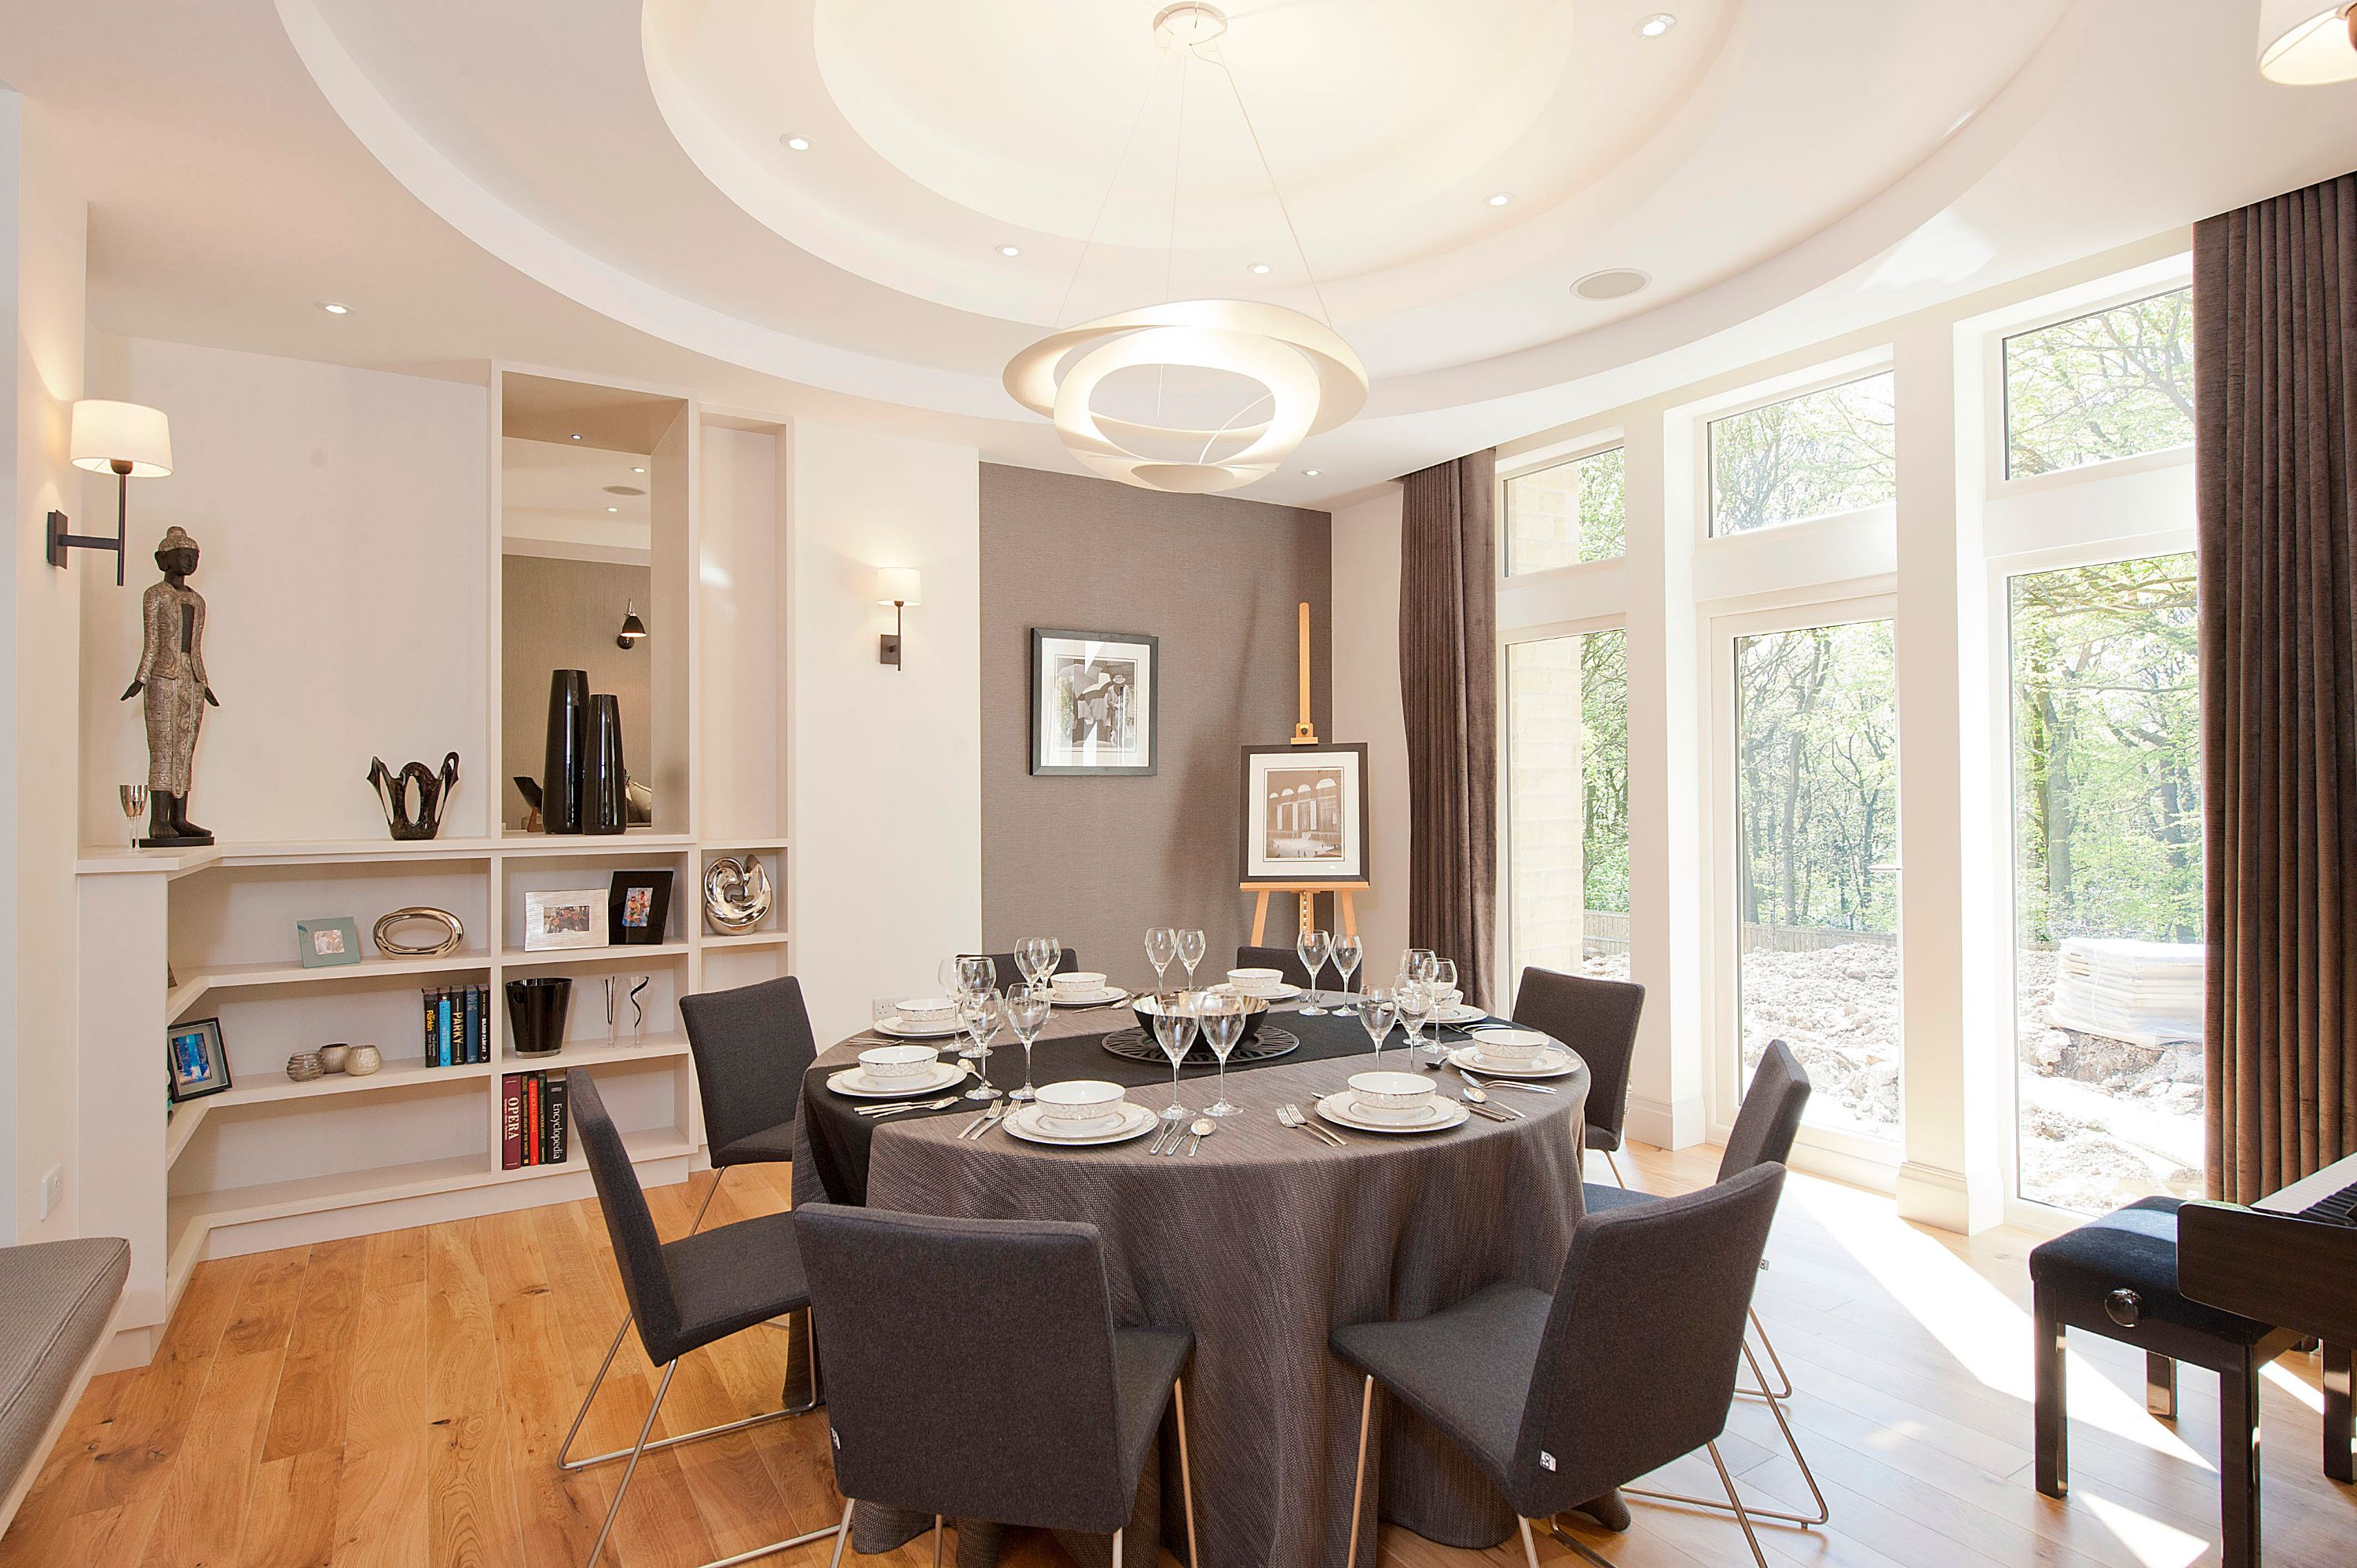 Dining room by one 17. circular profiled ceiling. circular dining